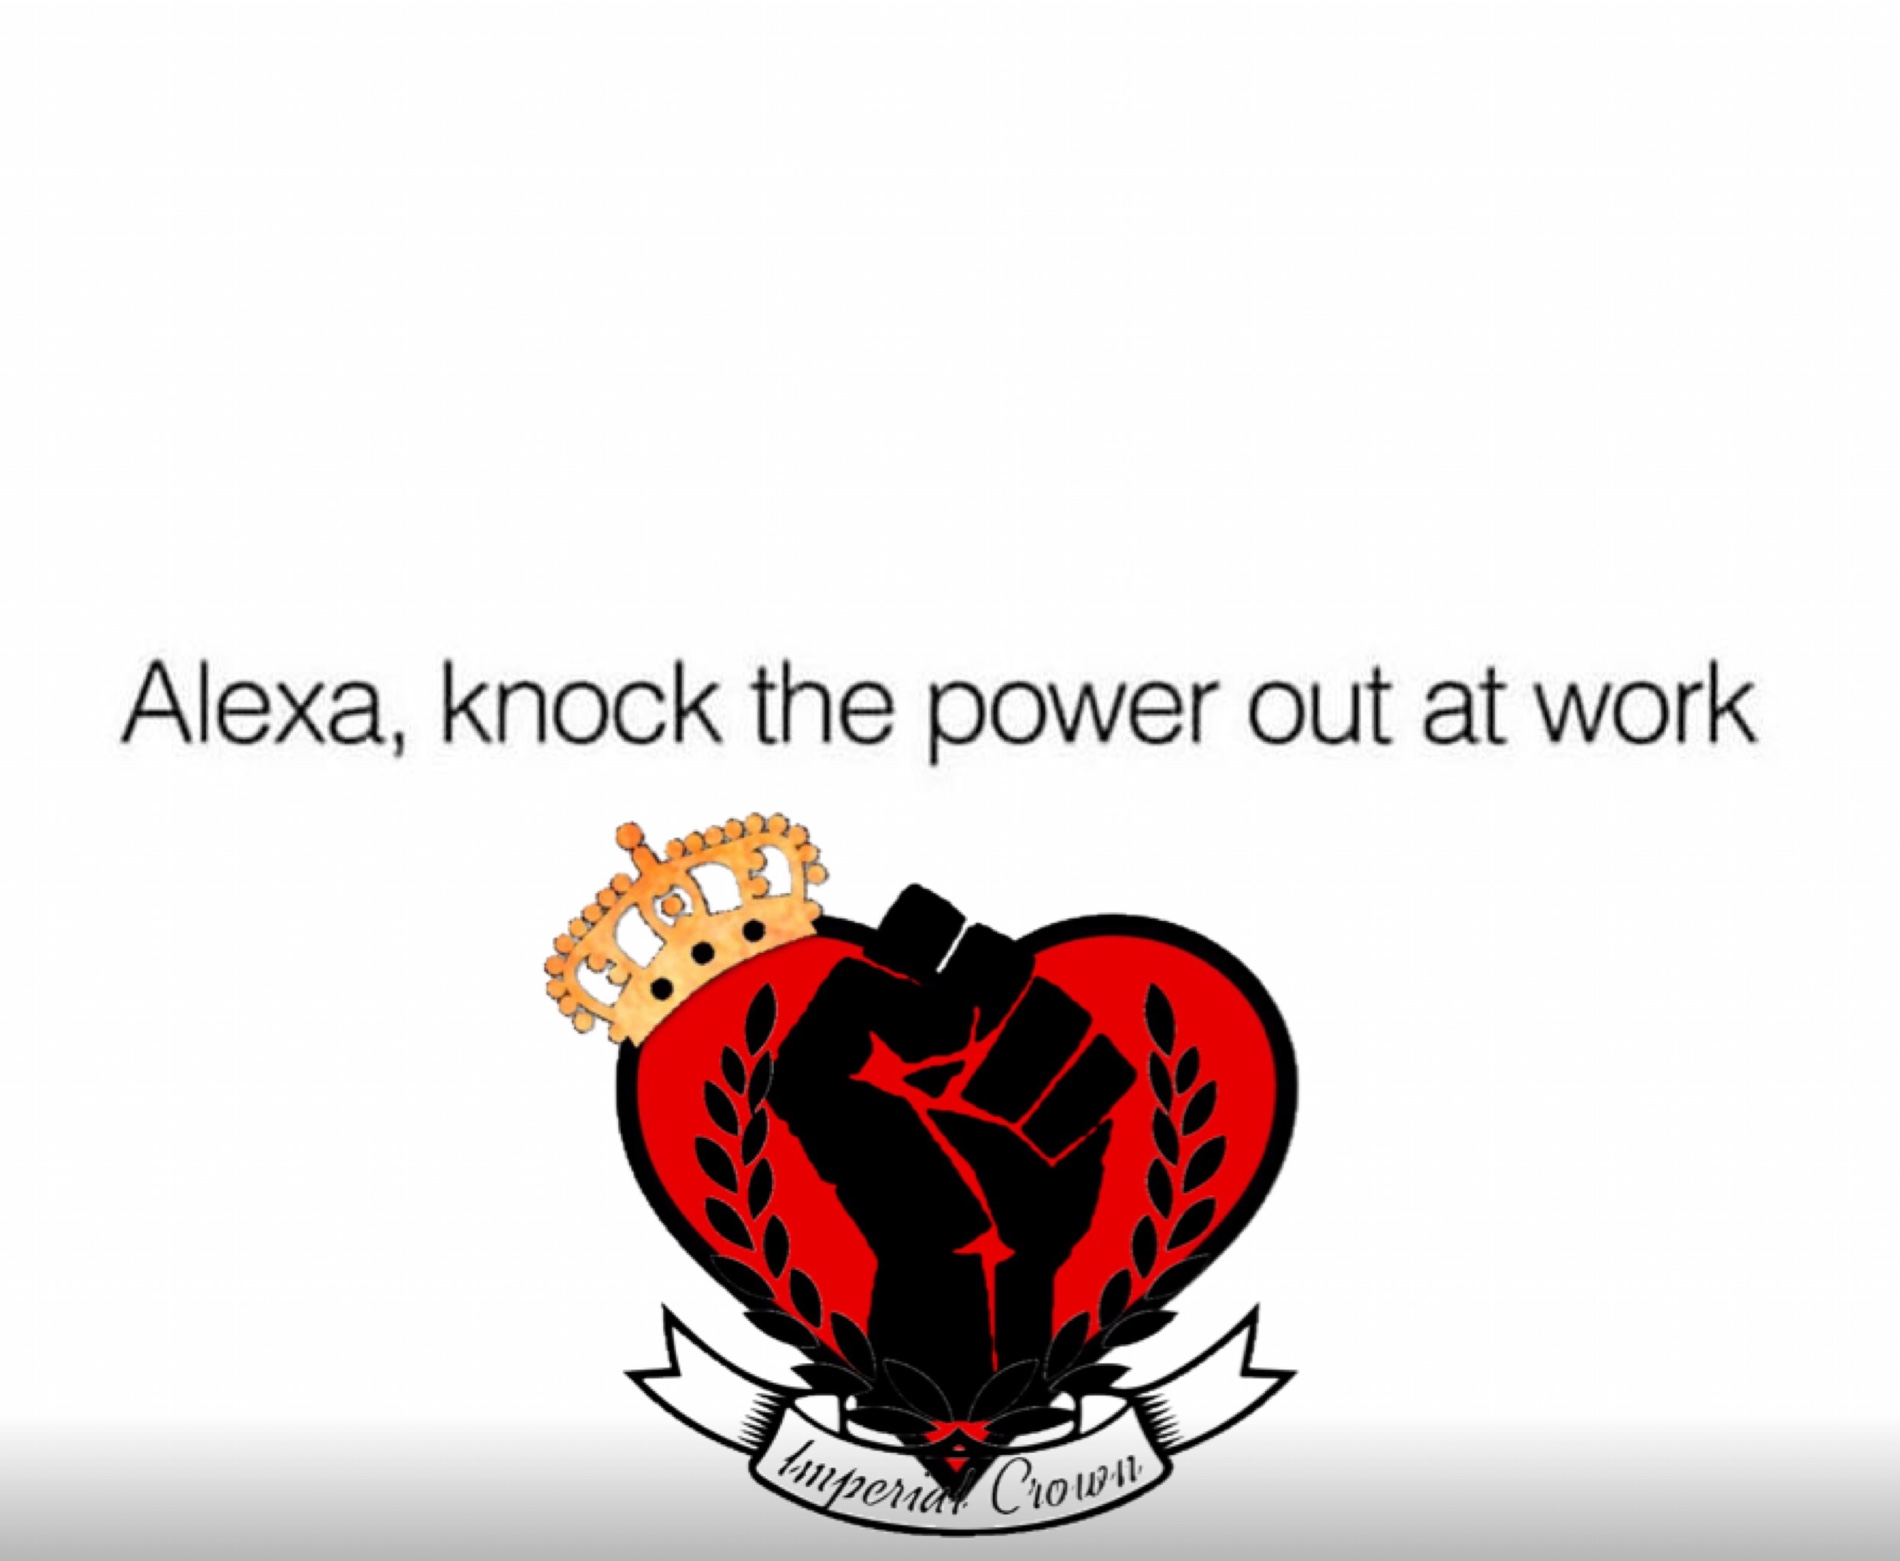 Alexa knock the power out at work …